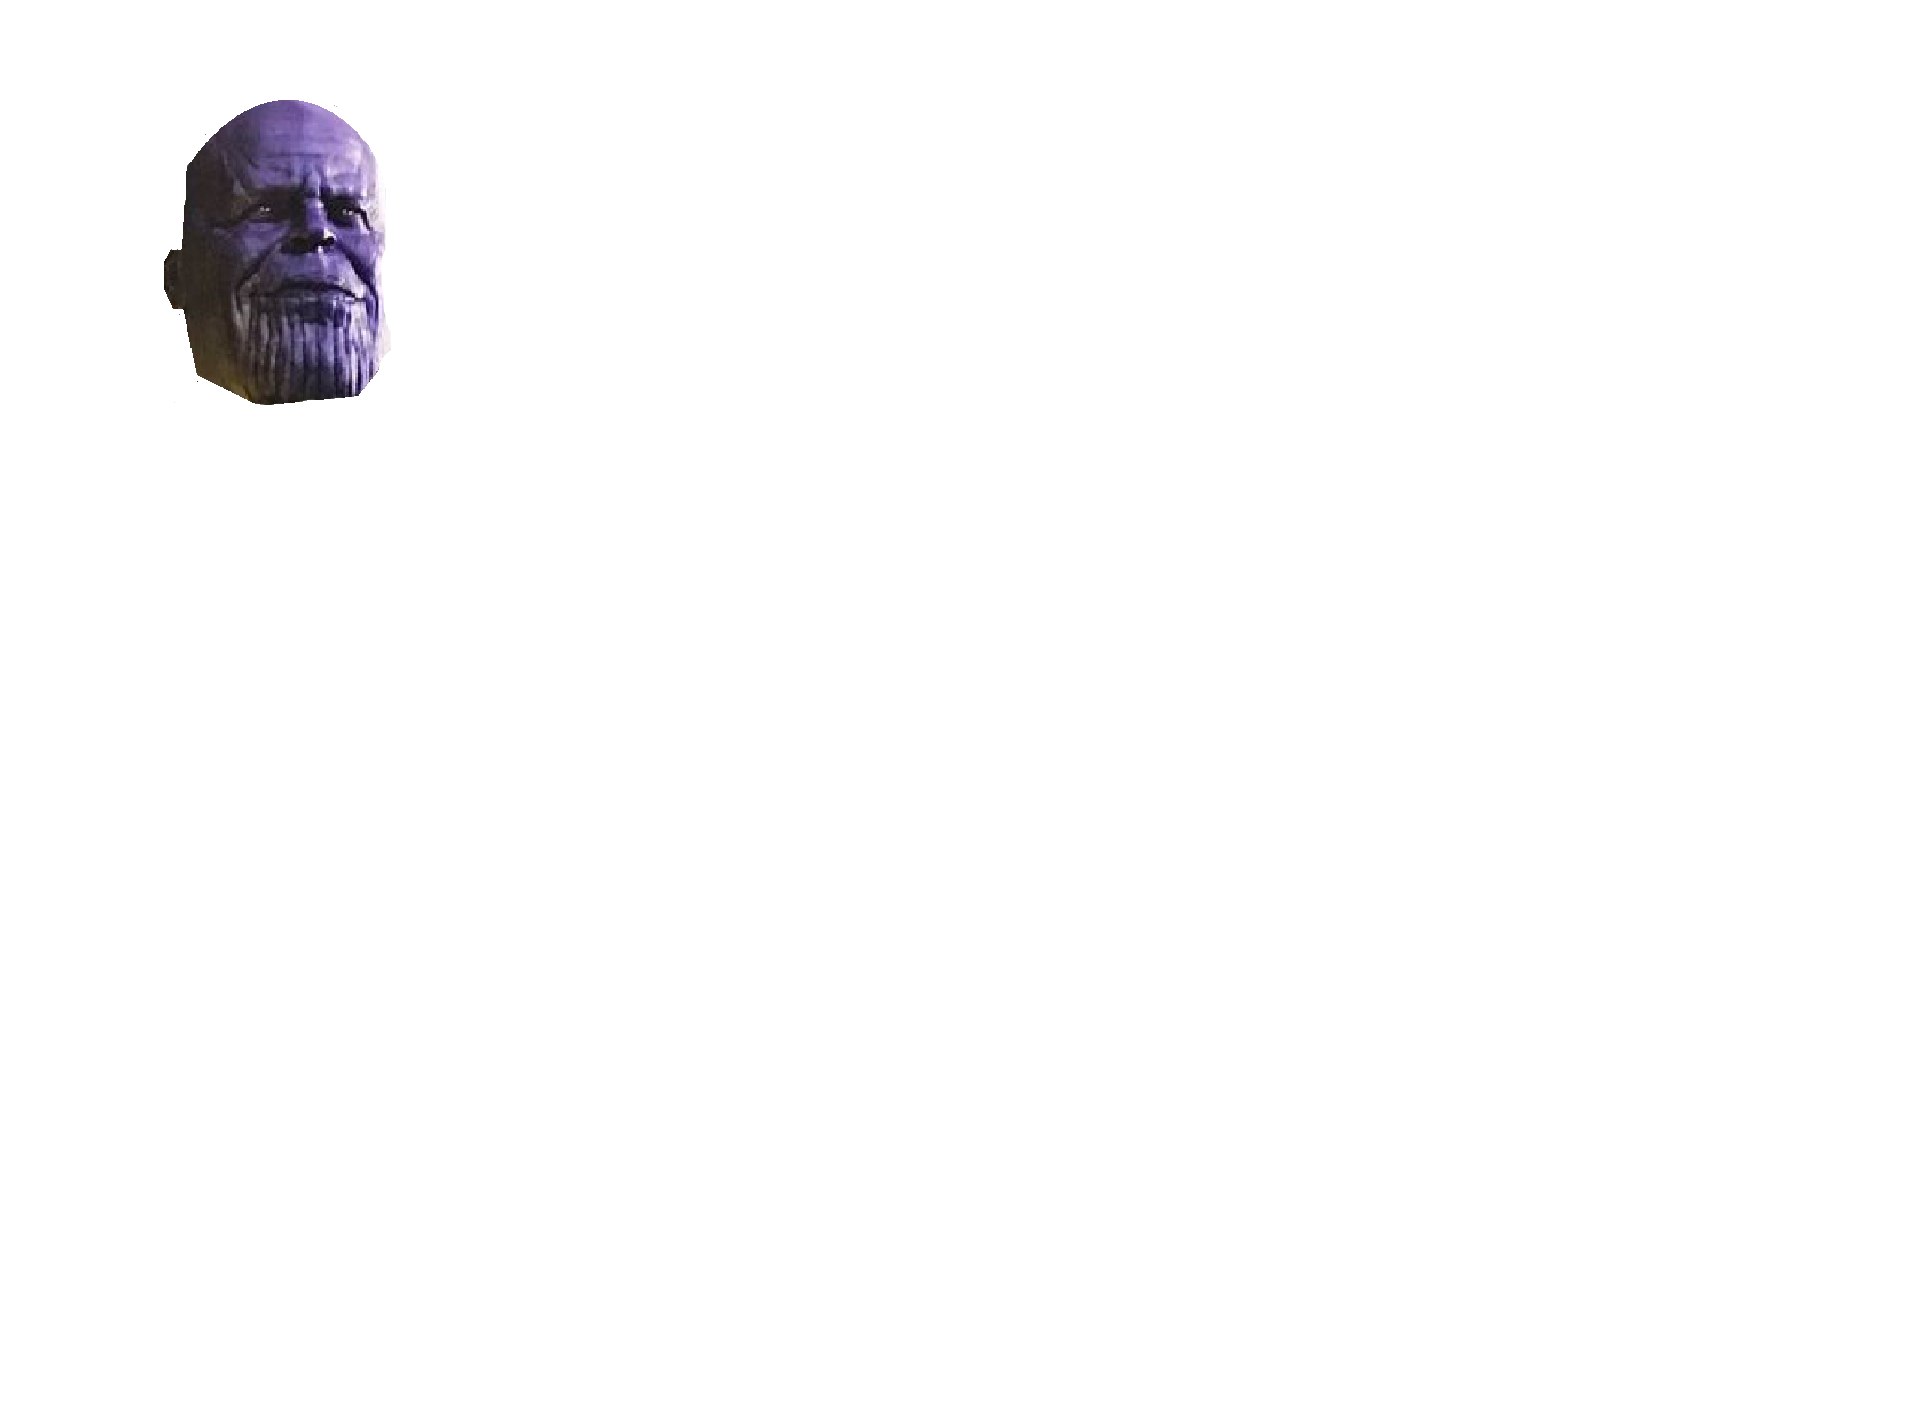 Thanos png head. Character idea khatastropher soccer